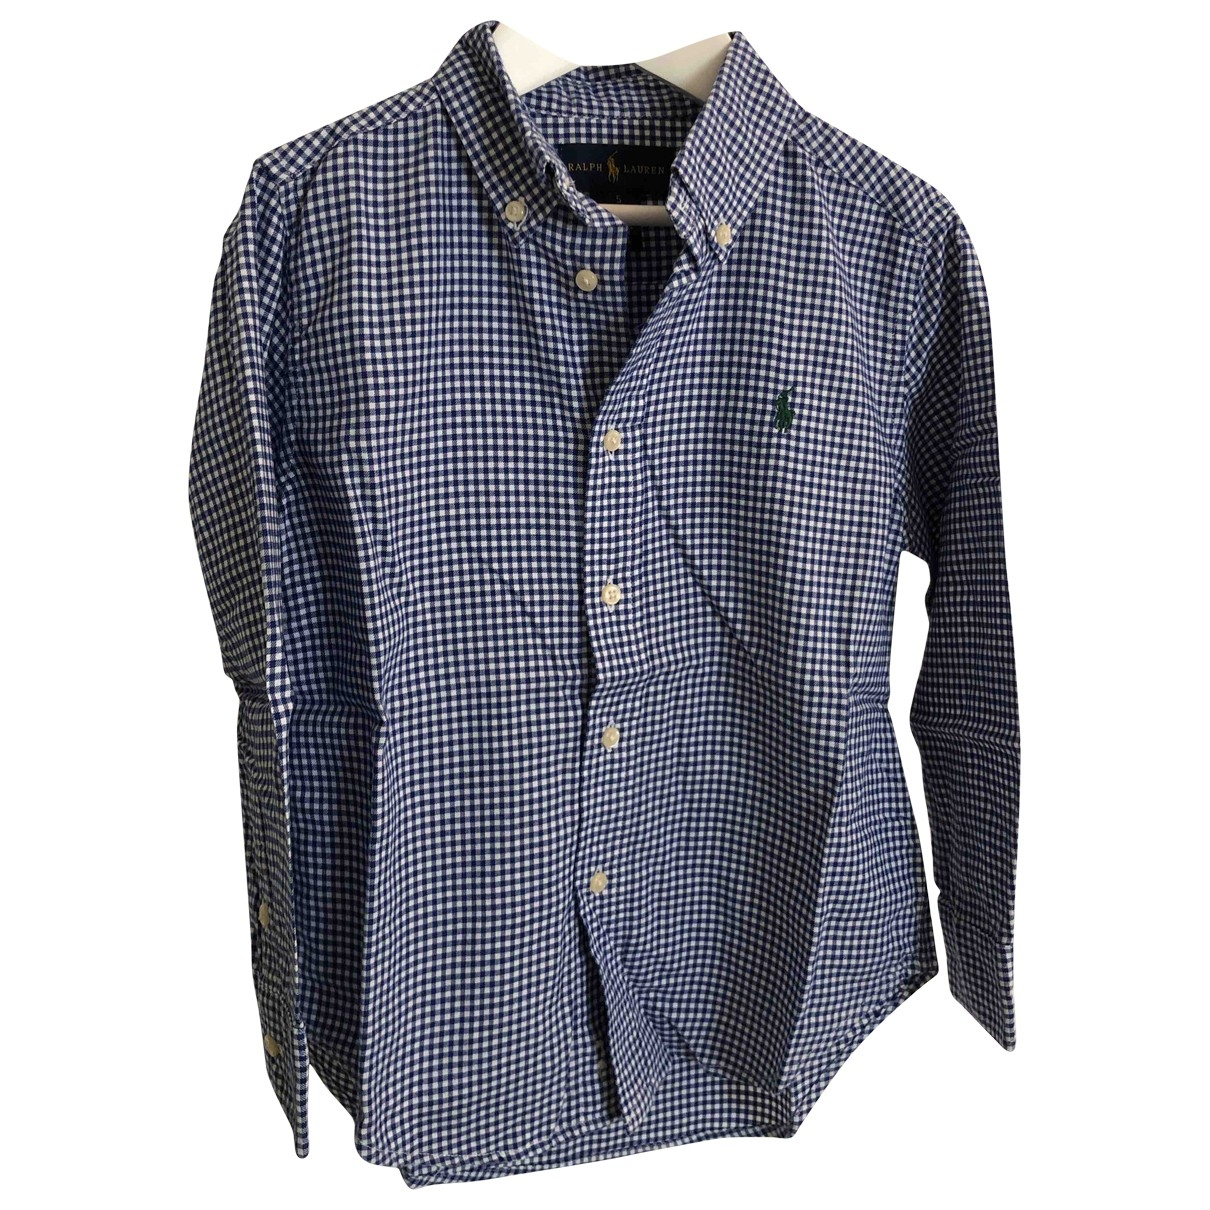 Ralph Lauren \N Blue Cotton  top for Kids 5 years - until 42.5 inches UK